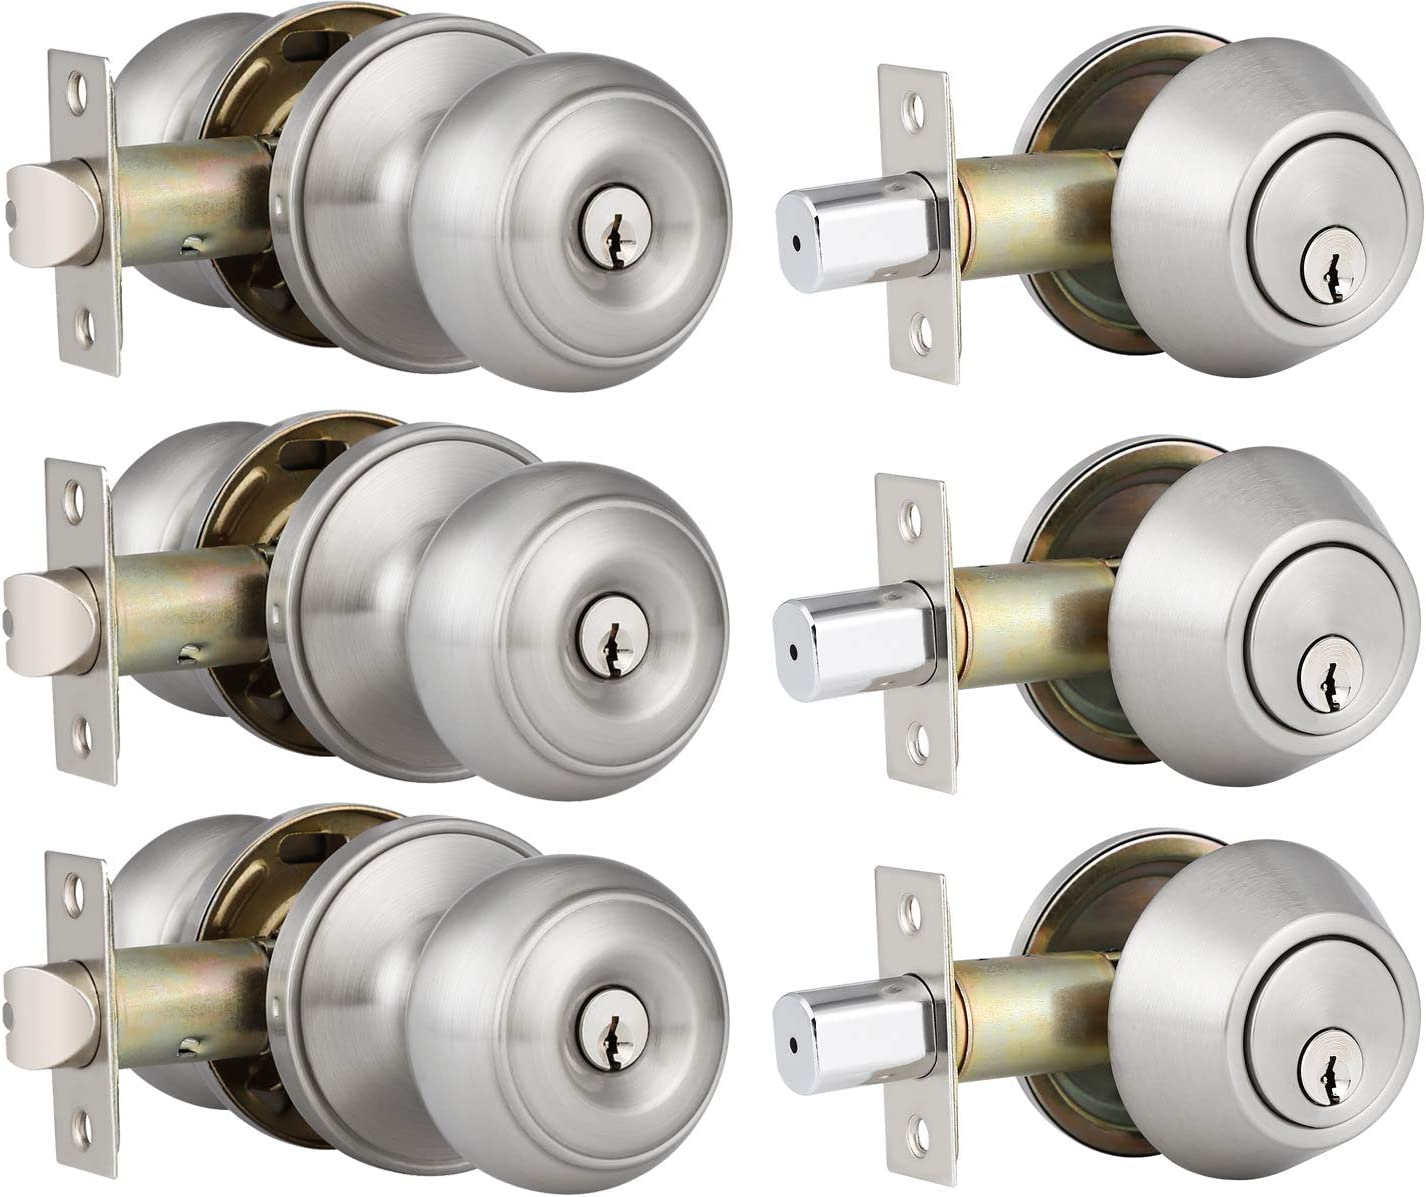 3 Pack Keyed Alike Entry Door Knobs and Single Cylinder Deadbolt Lock Combo S...